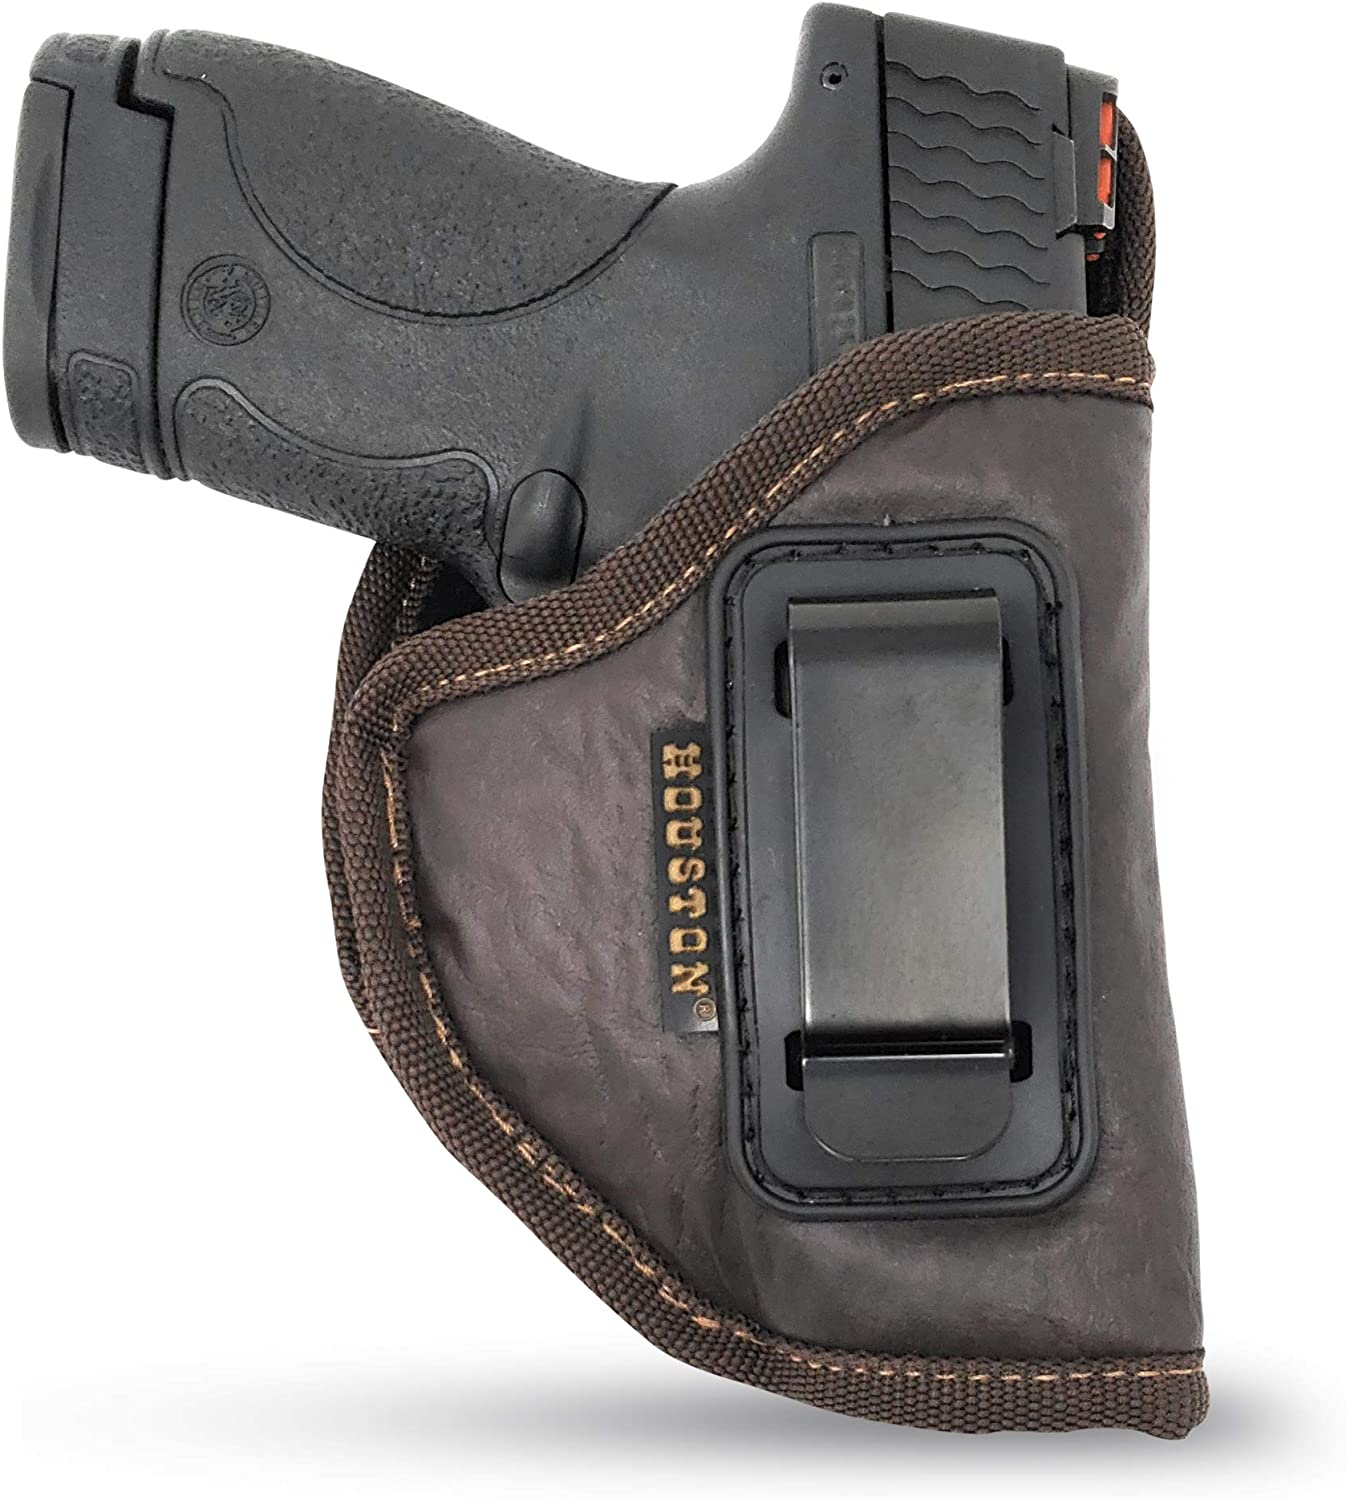 IWB Gun Holster by Houston - Soft ECO Carry Ma Concealed Inventory cleanup selling sale Leather trend rank